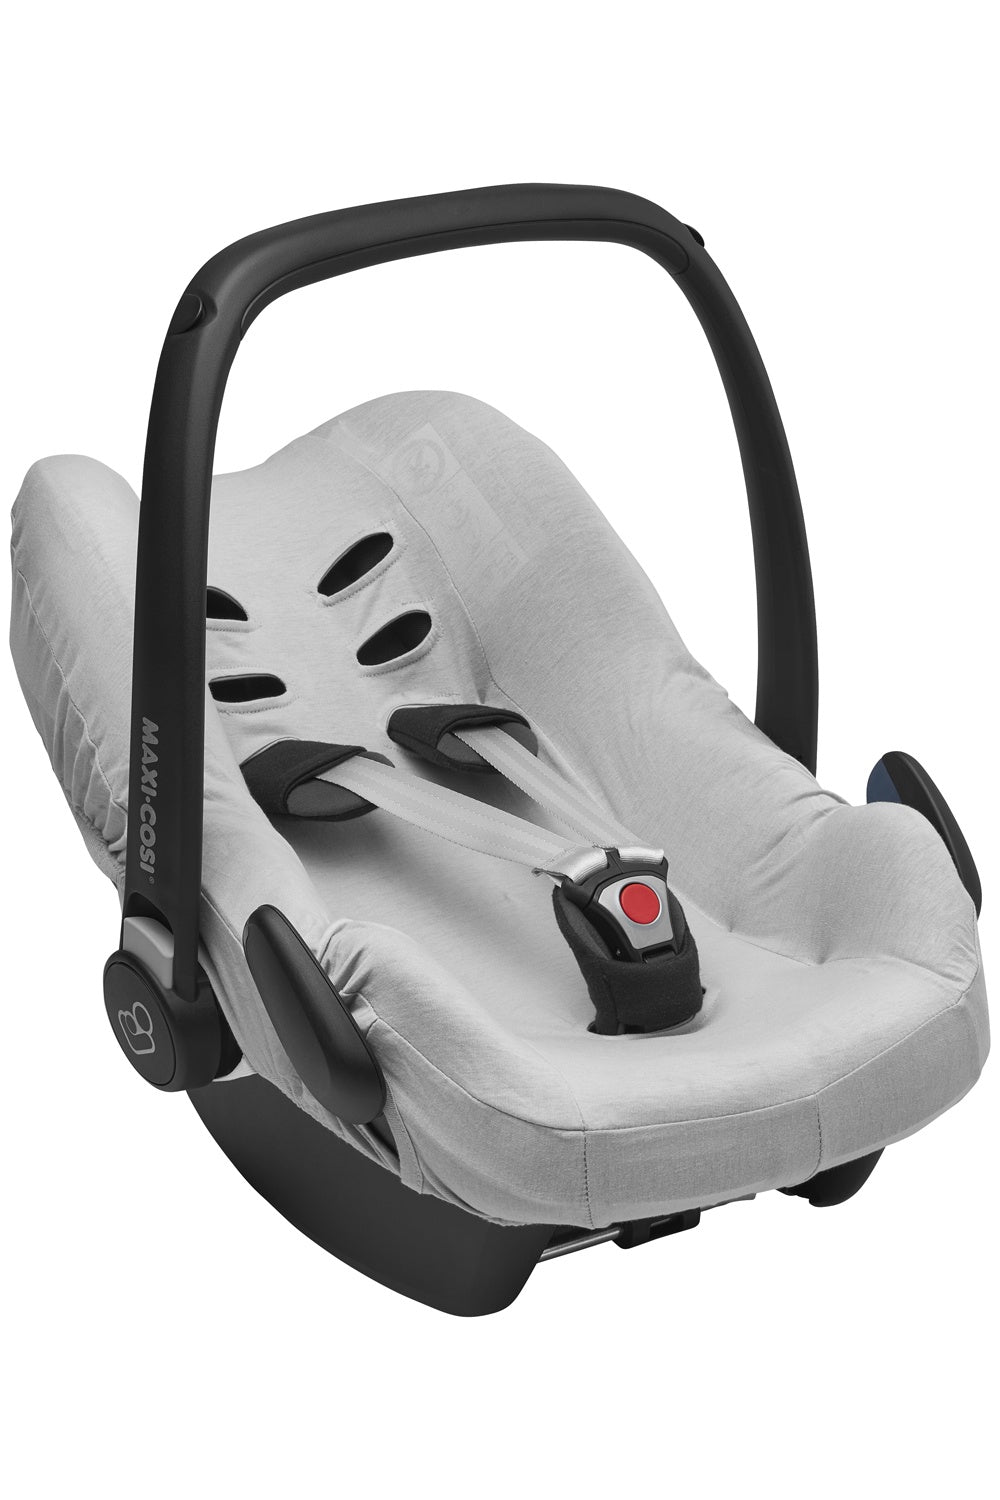 Carseat protector Jersey Group 0